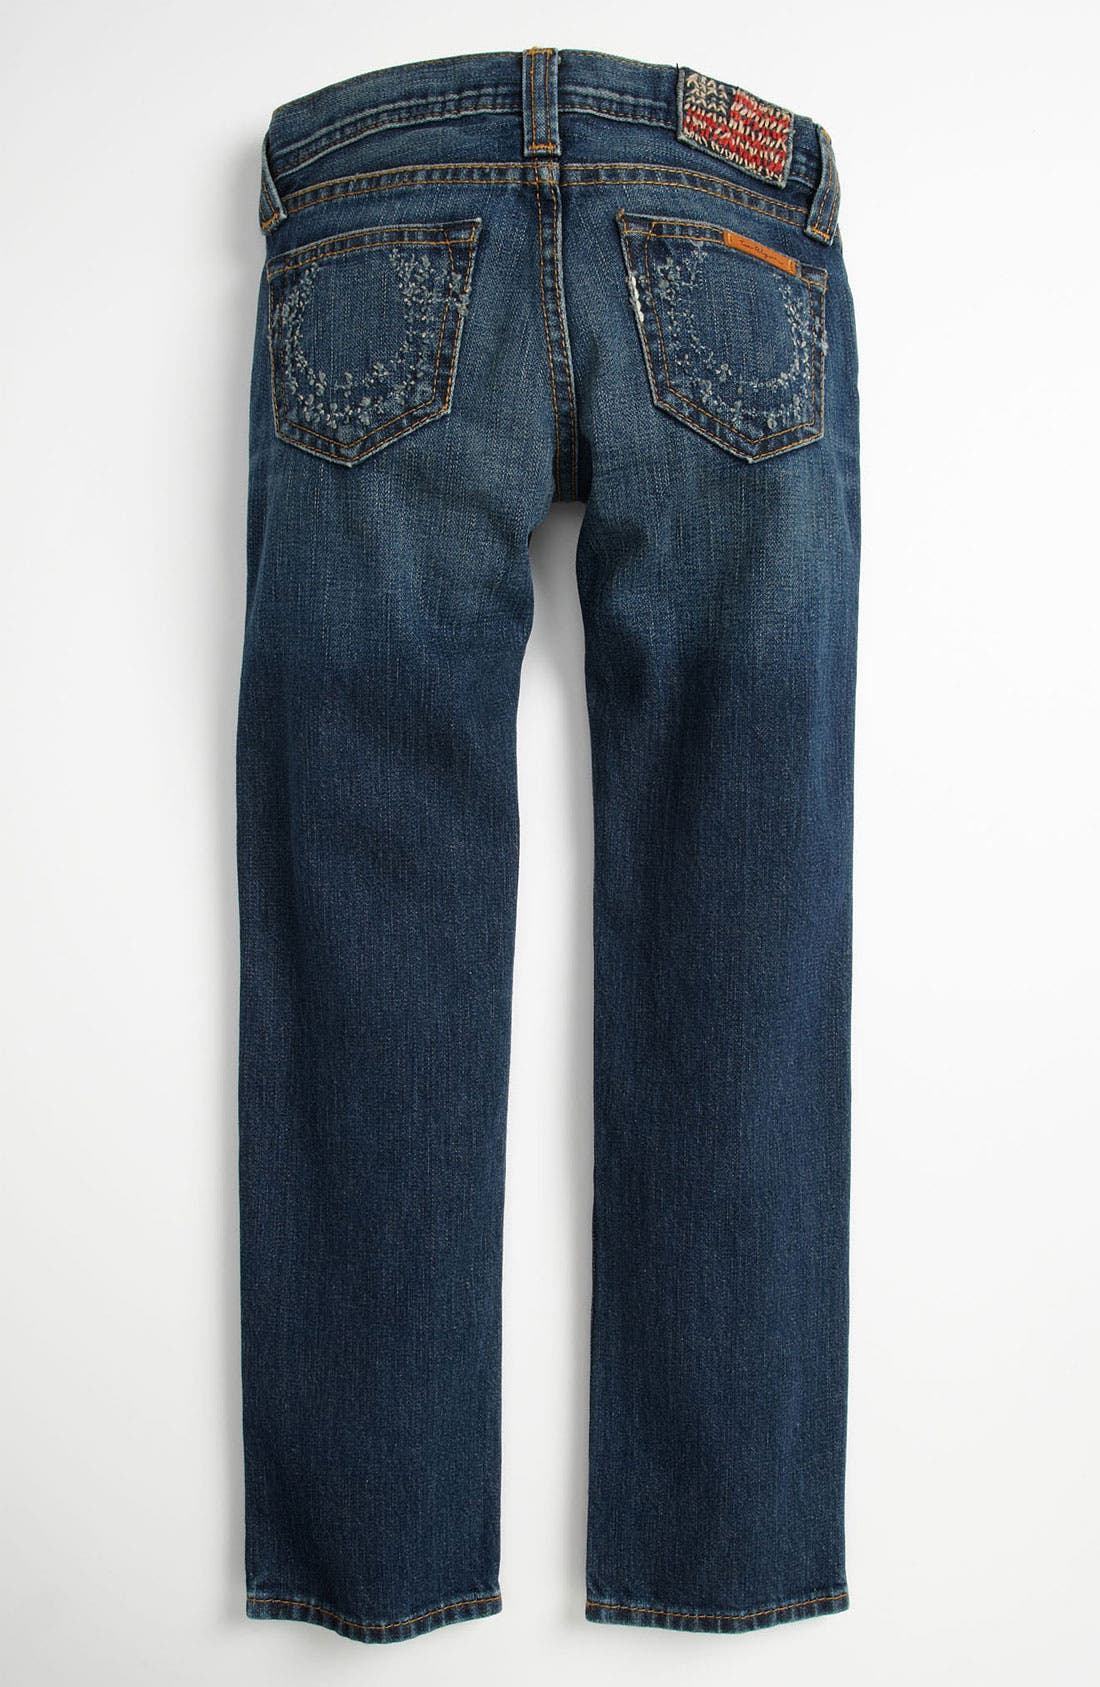 Alternate Image 1 Selected - True Religion Brand Jeans 'Rocco Skinny Fit' Jeans (Little Boys)